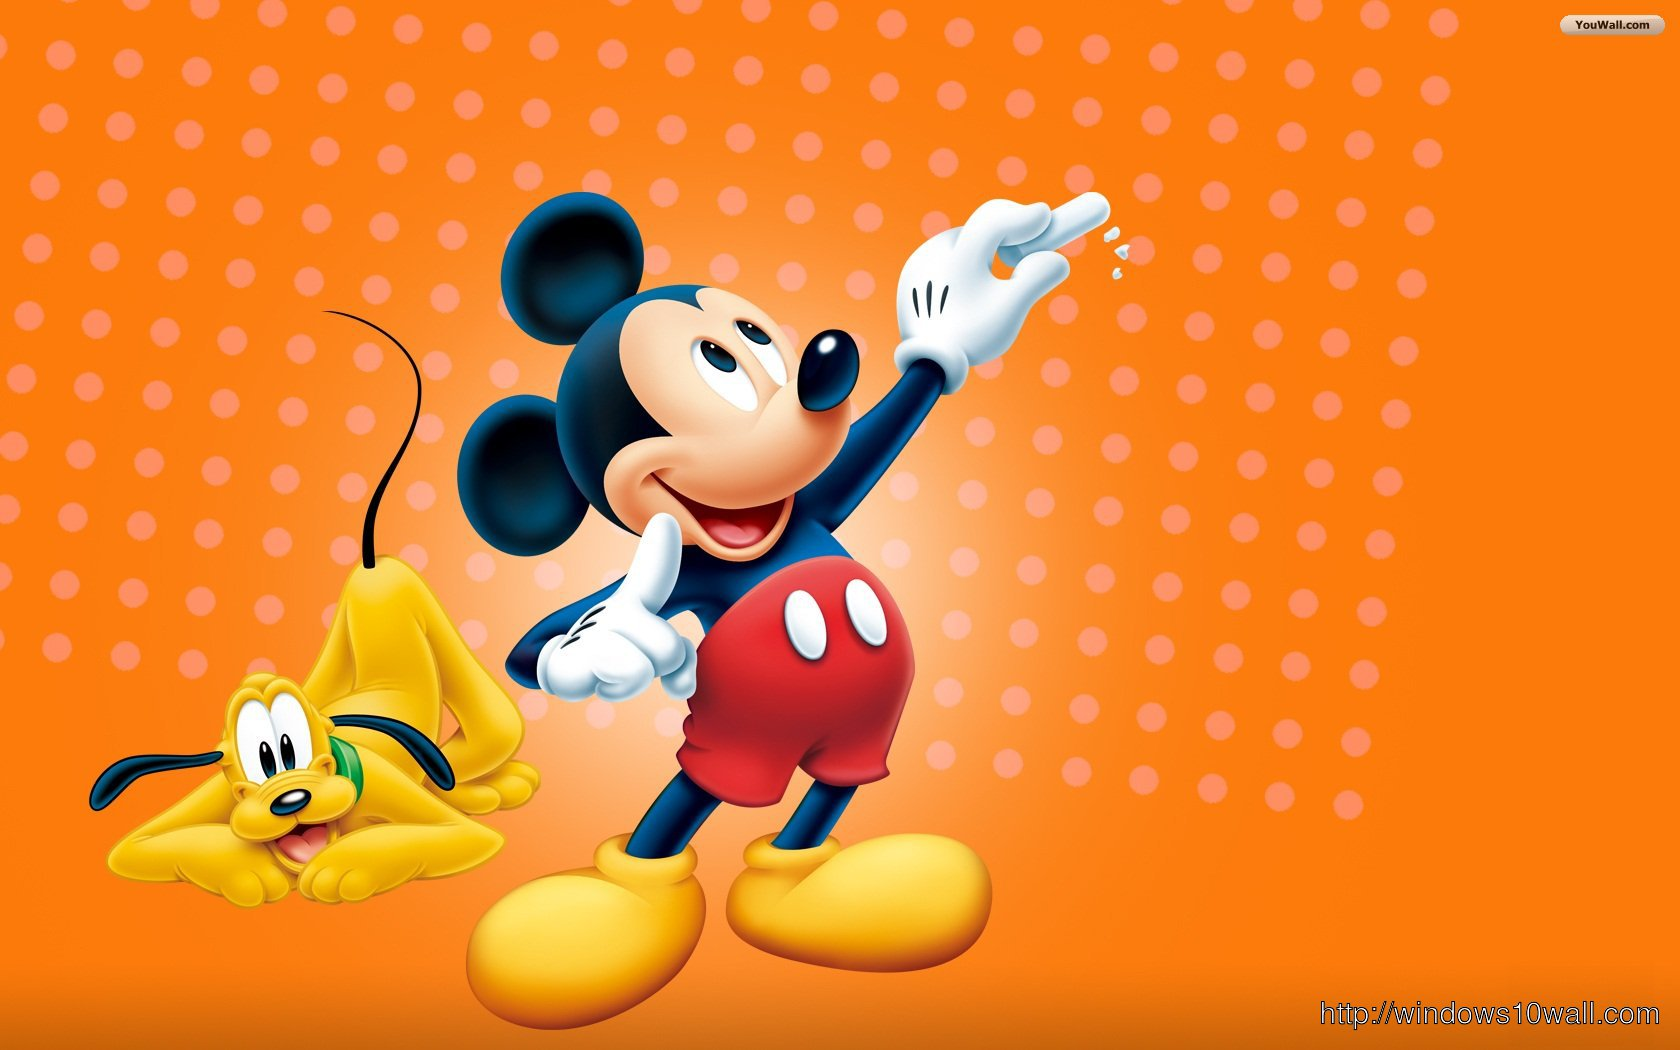 Disney Mickey Mouse Desktop Background Wallpaper